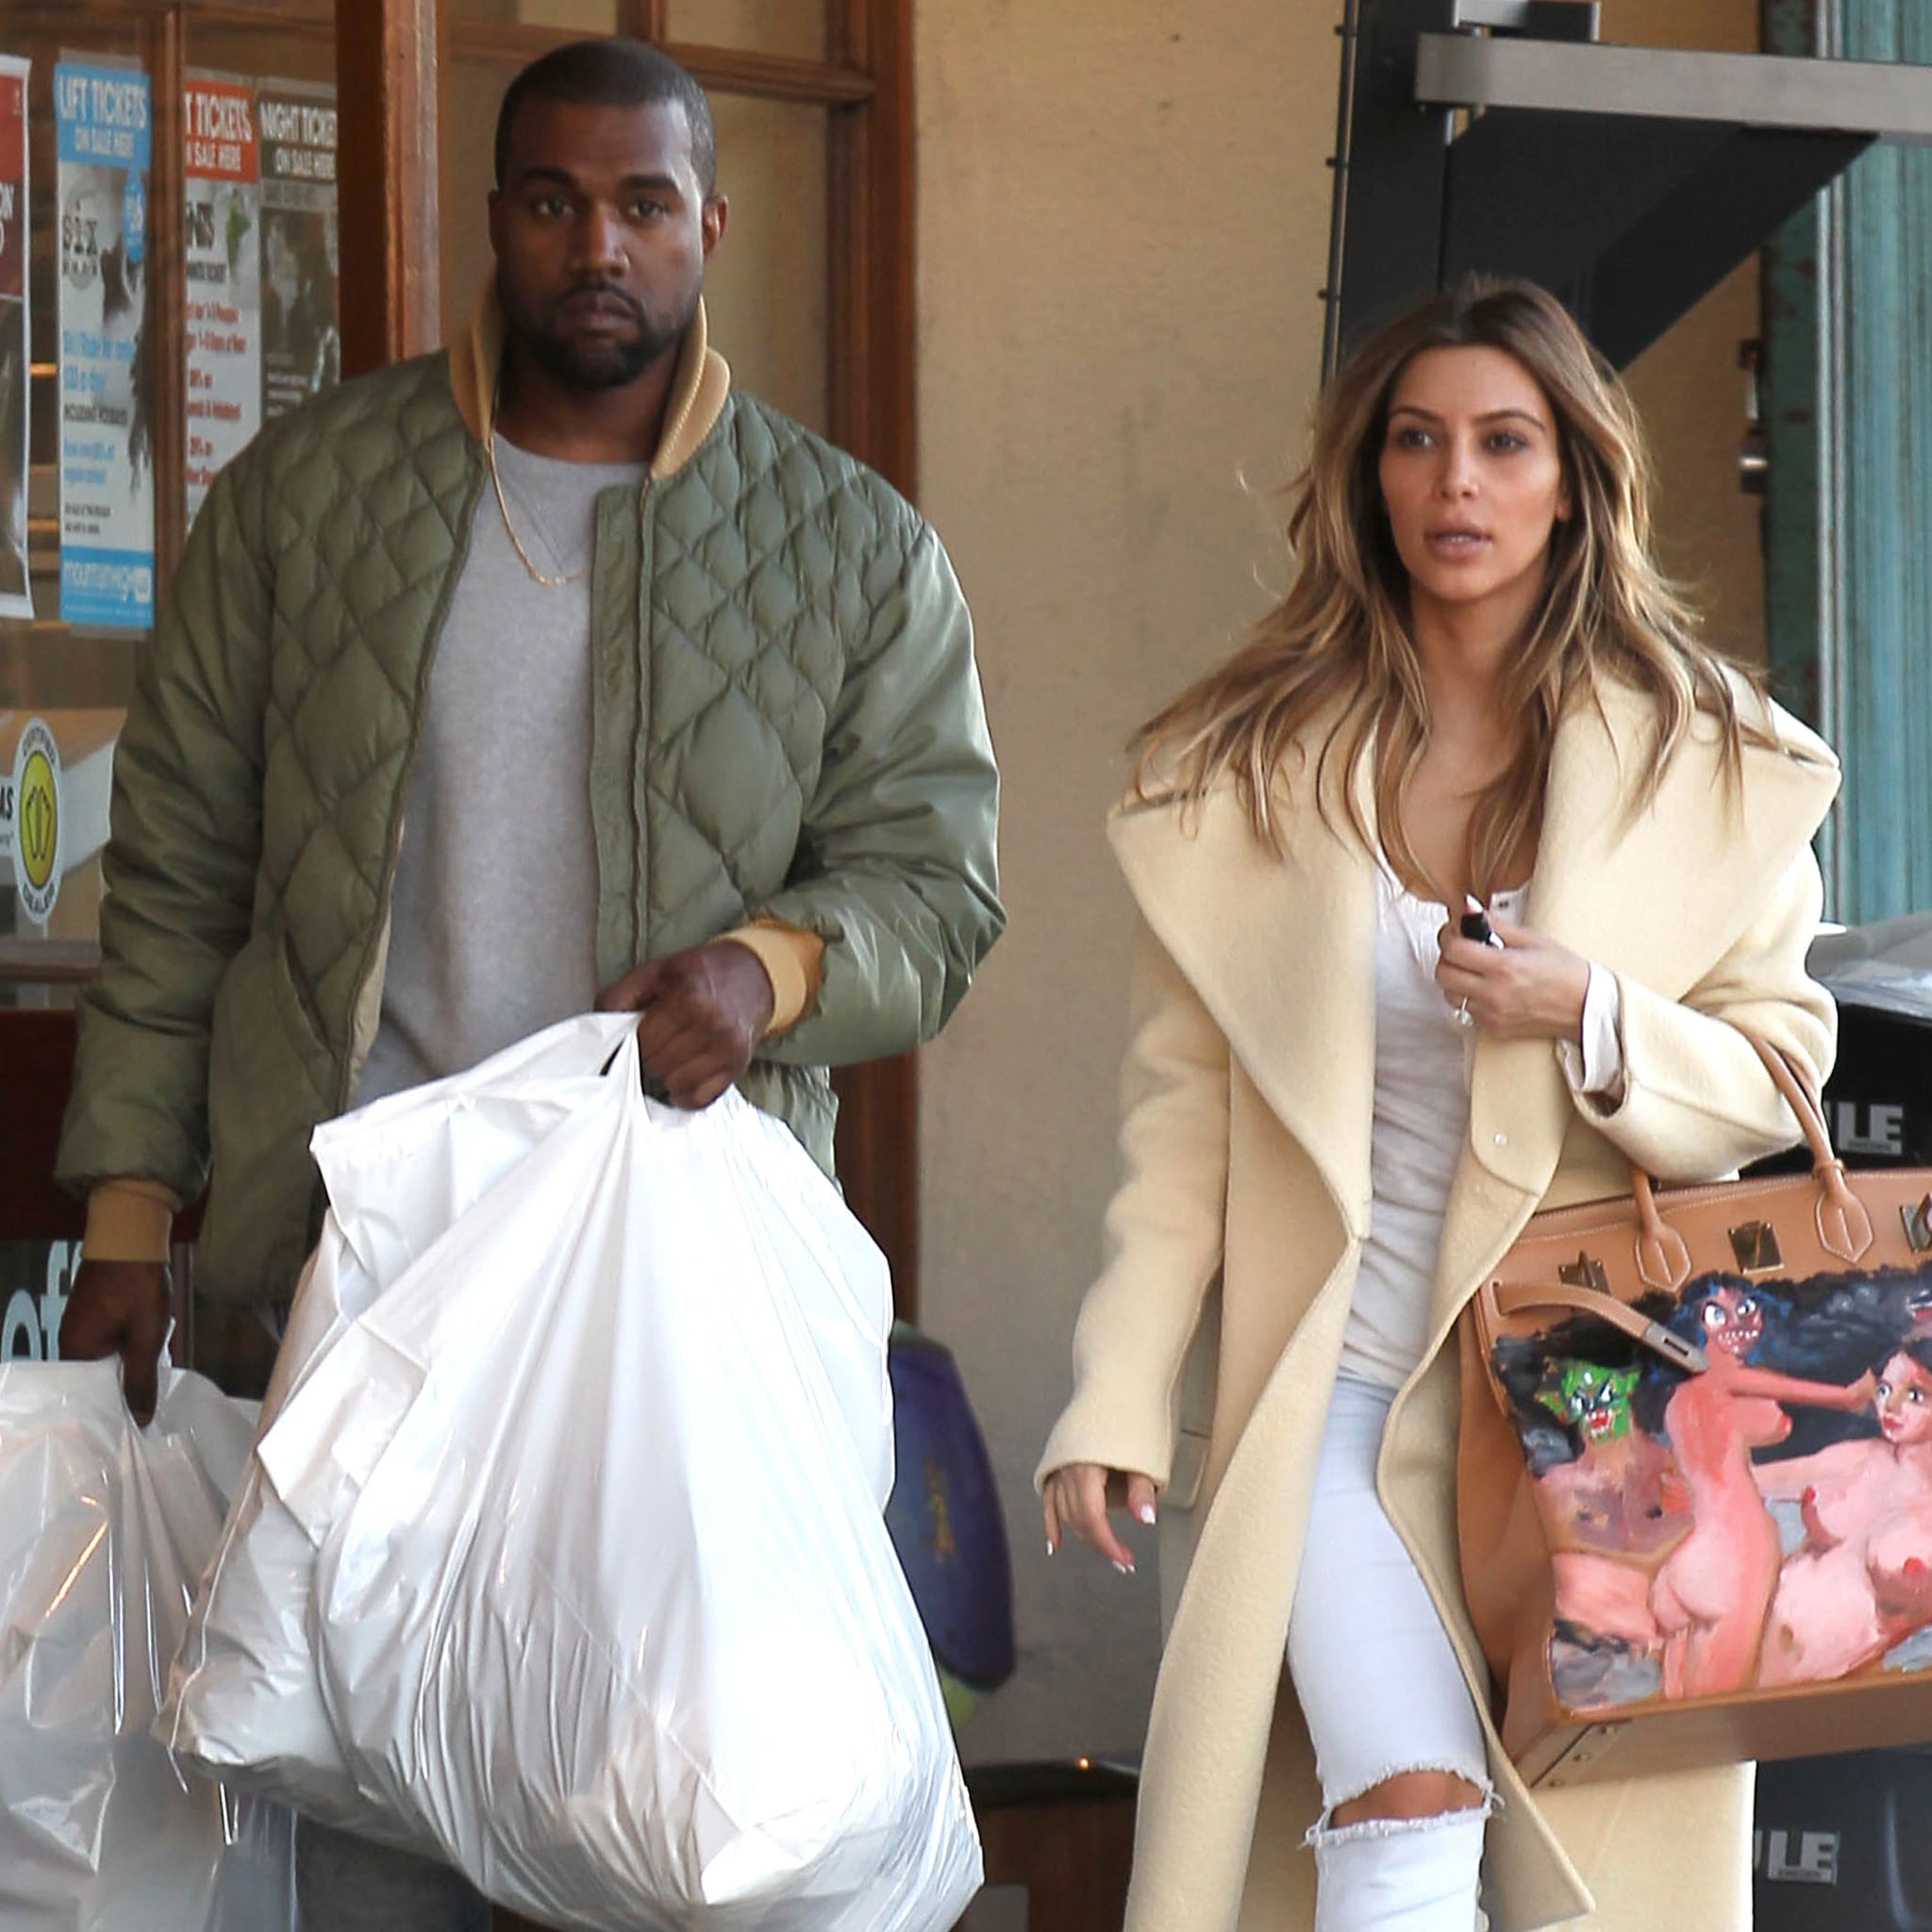 Kanye's Christmas Gift To Kim: An Hermès Birkin Bag Covered in NudePaintings